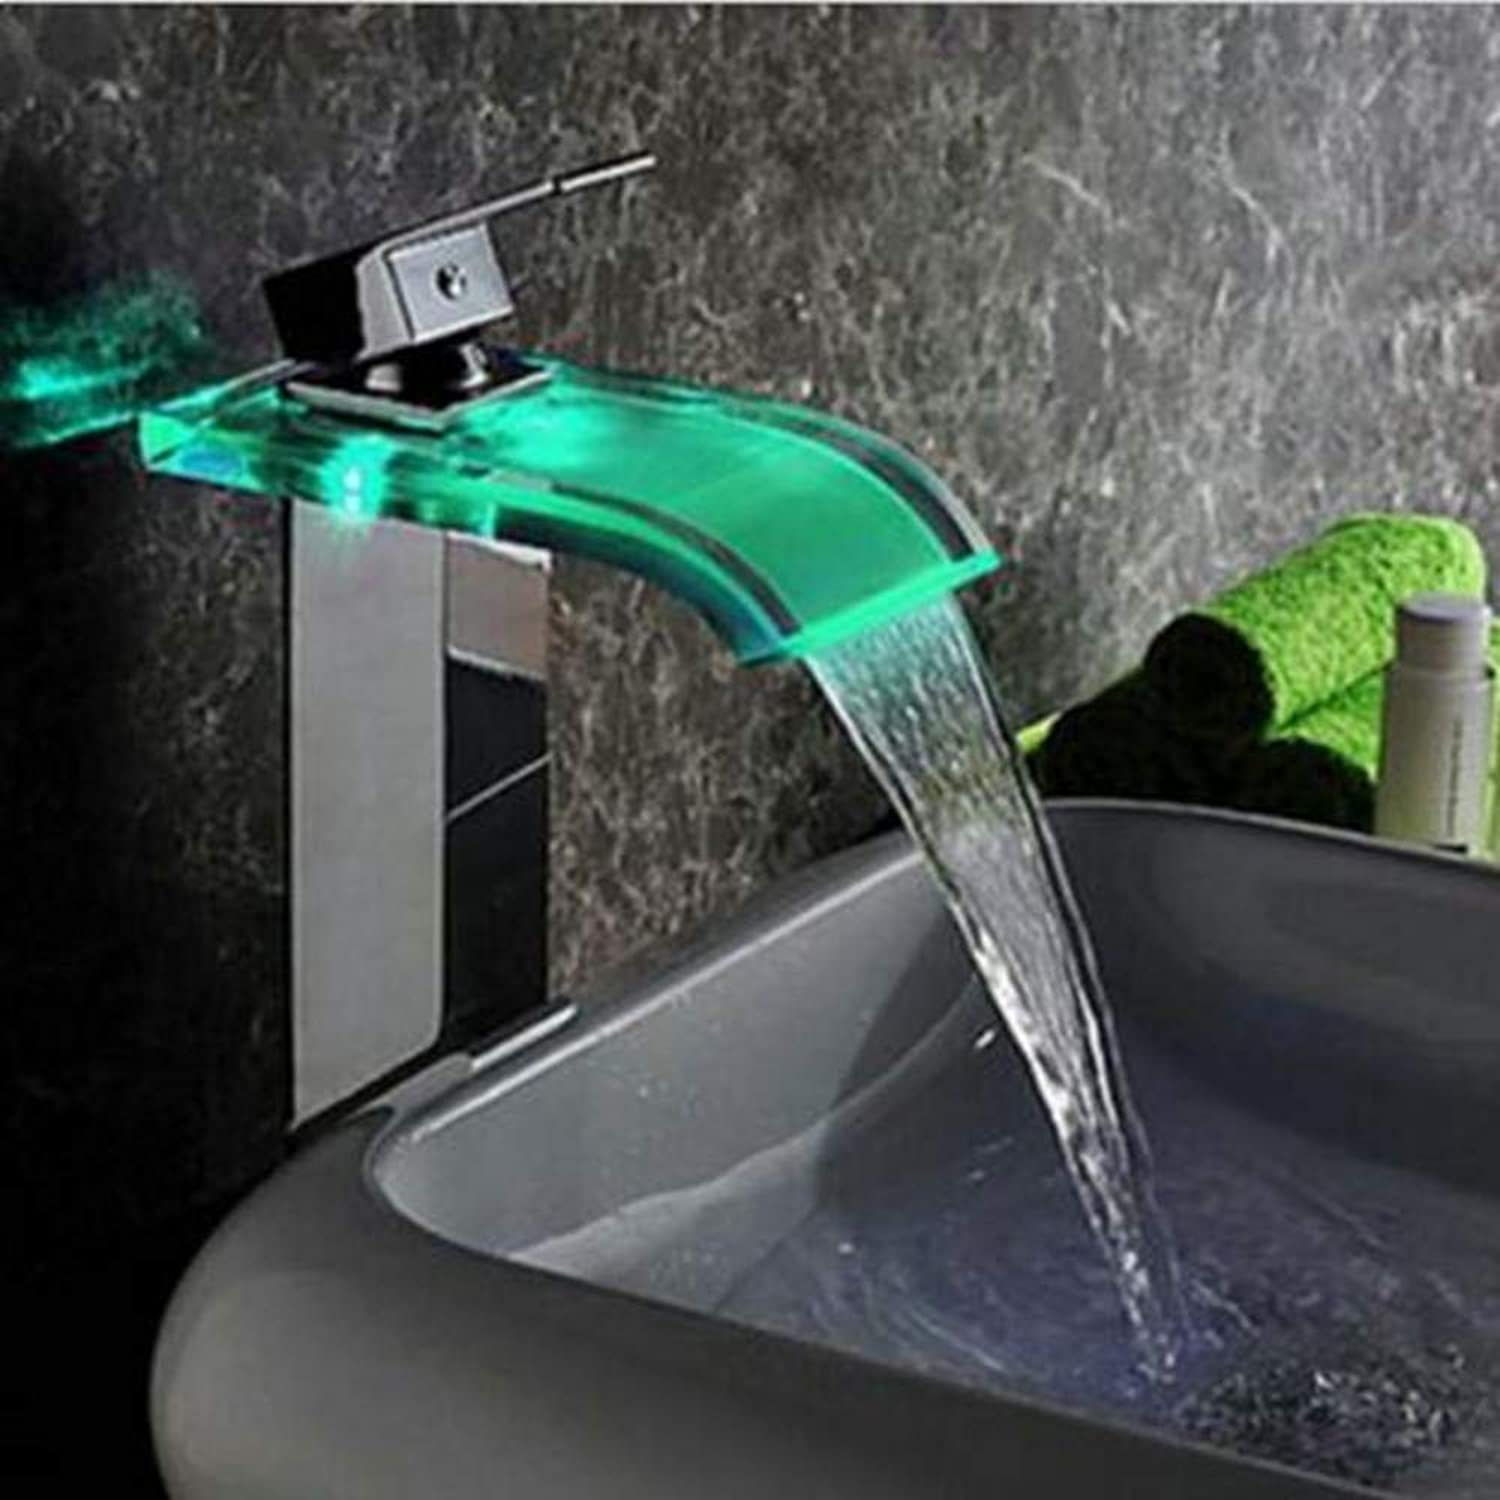 Floungey Kitchen Sink Taps Bathroom Sink Taps Modern Led color Changing Glass Waterfall Spout Bathroom Basin Faucet Vanity Mixer Tap Chrome